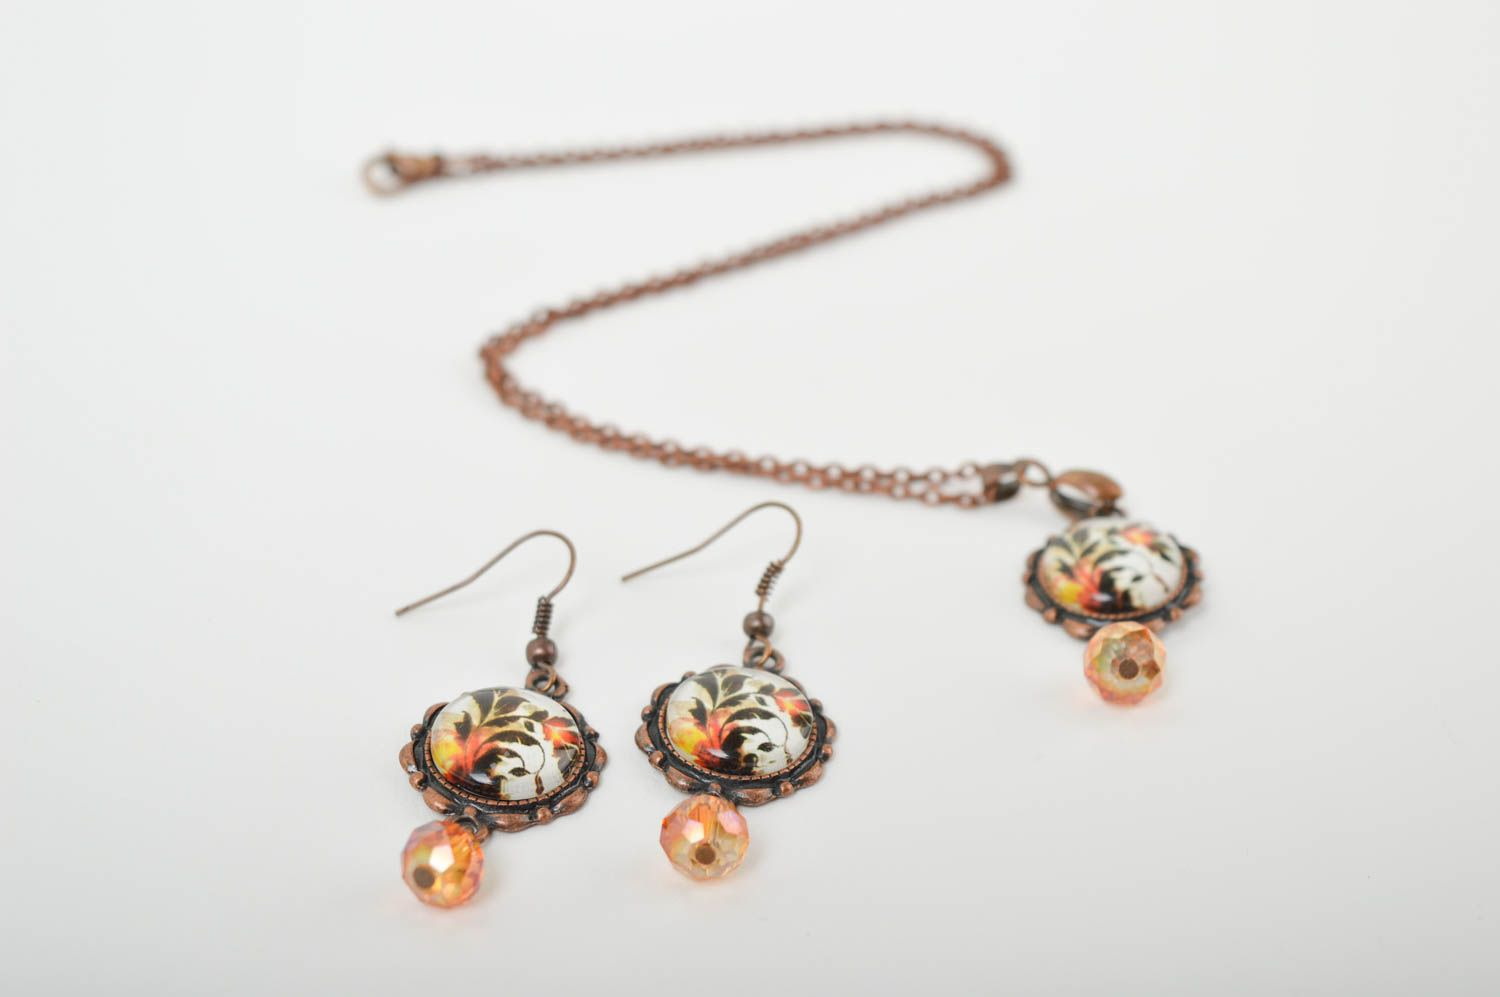 Handmade metal jewelry set glass bead earrings pendant necklace gifts for her photo 2